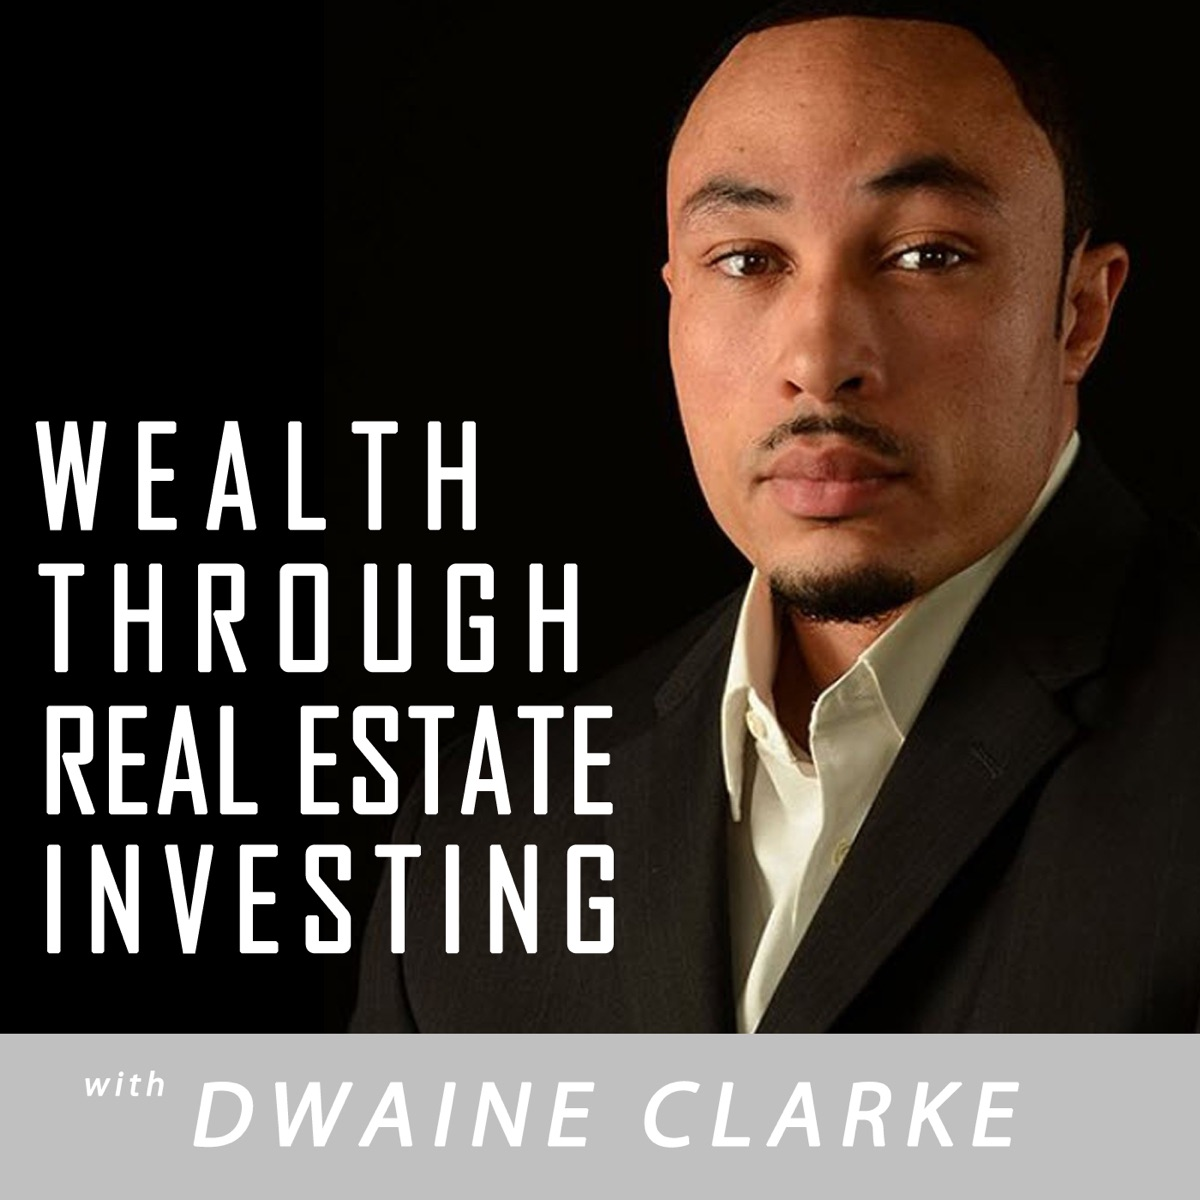 Wealth Through Real Estate Investing Podcast with Dwaine Clarke